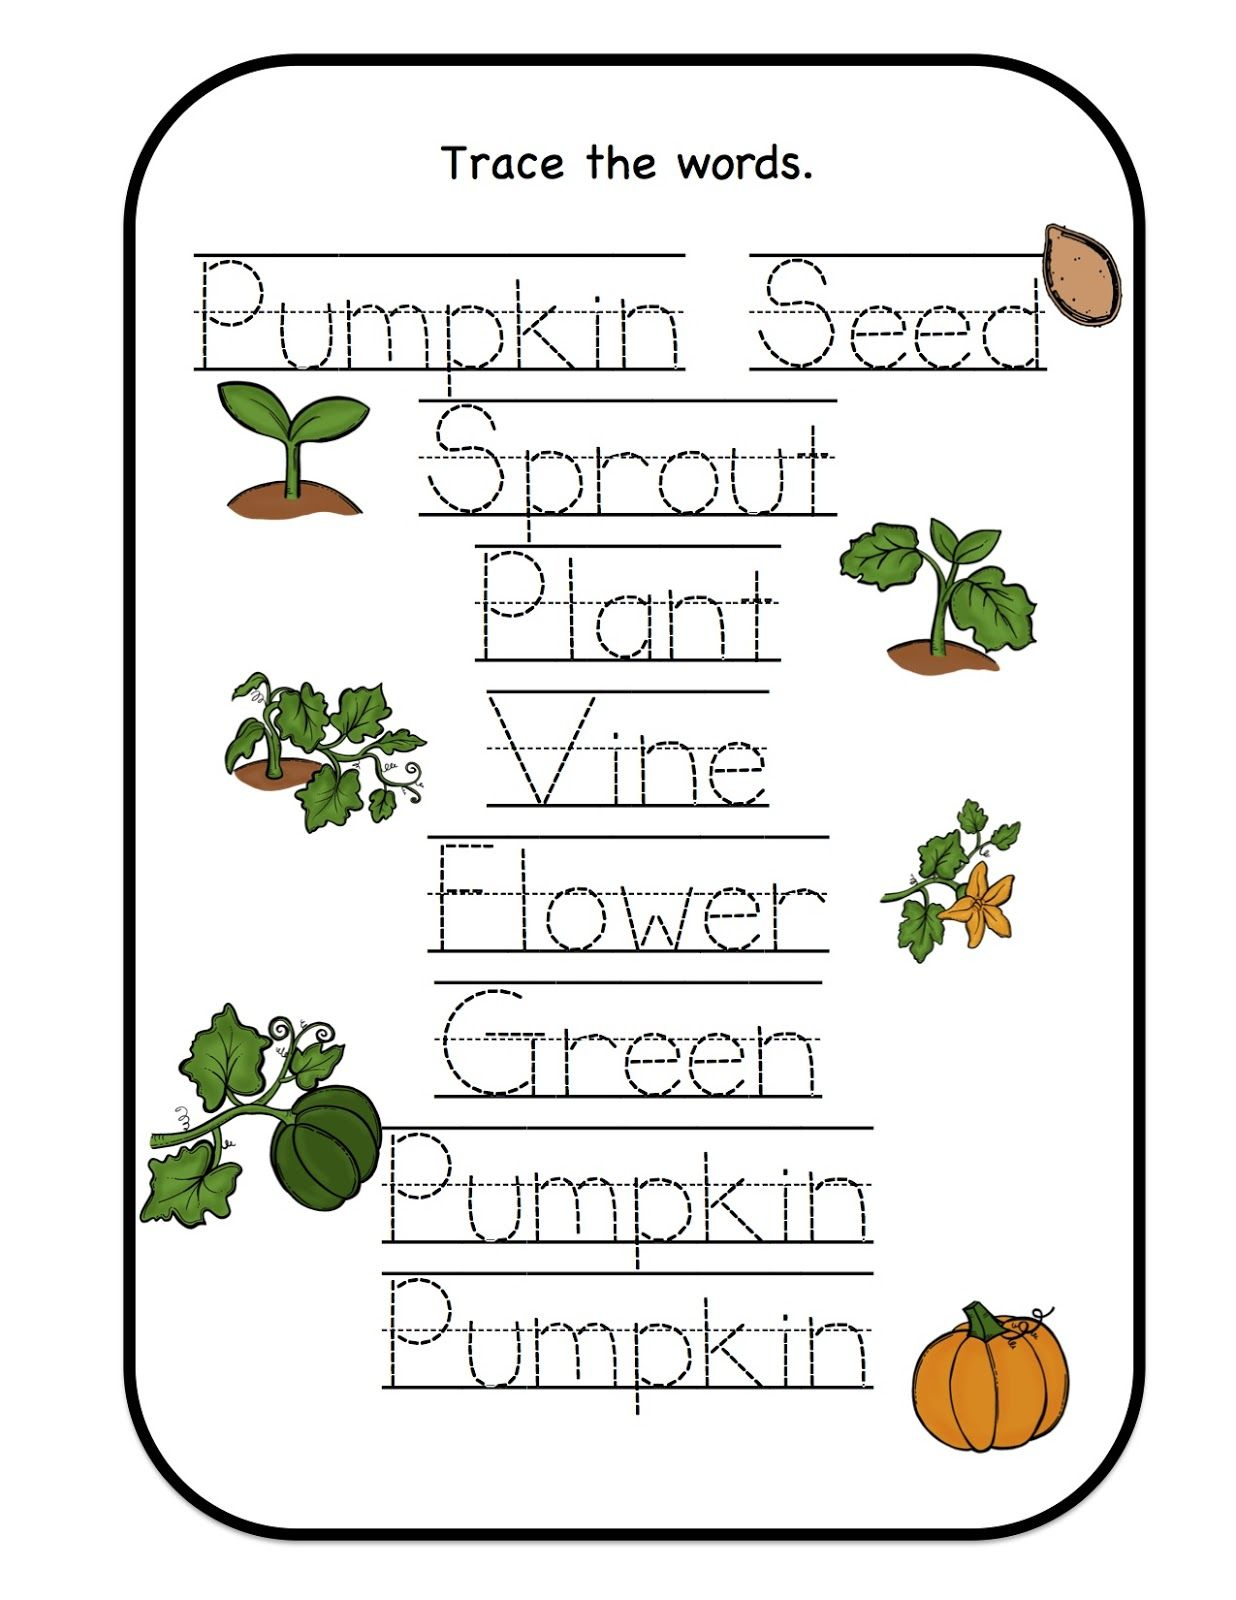 Fresh Ideas - Preschool Printables February 2013 Pumpkin life cycle